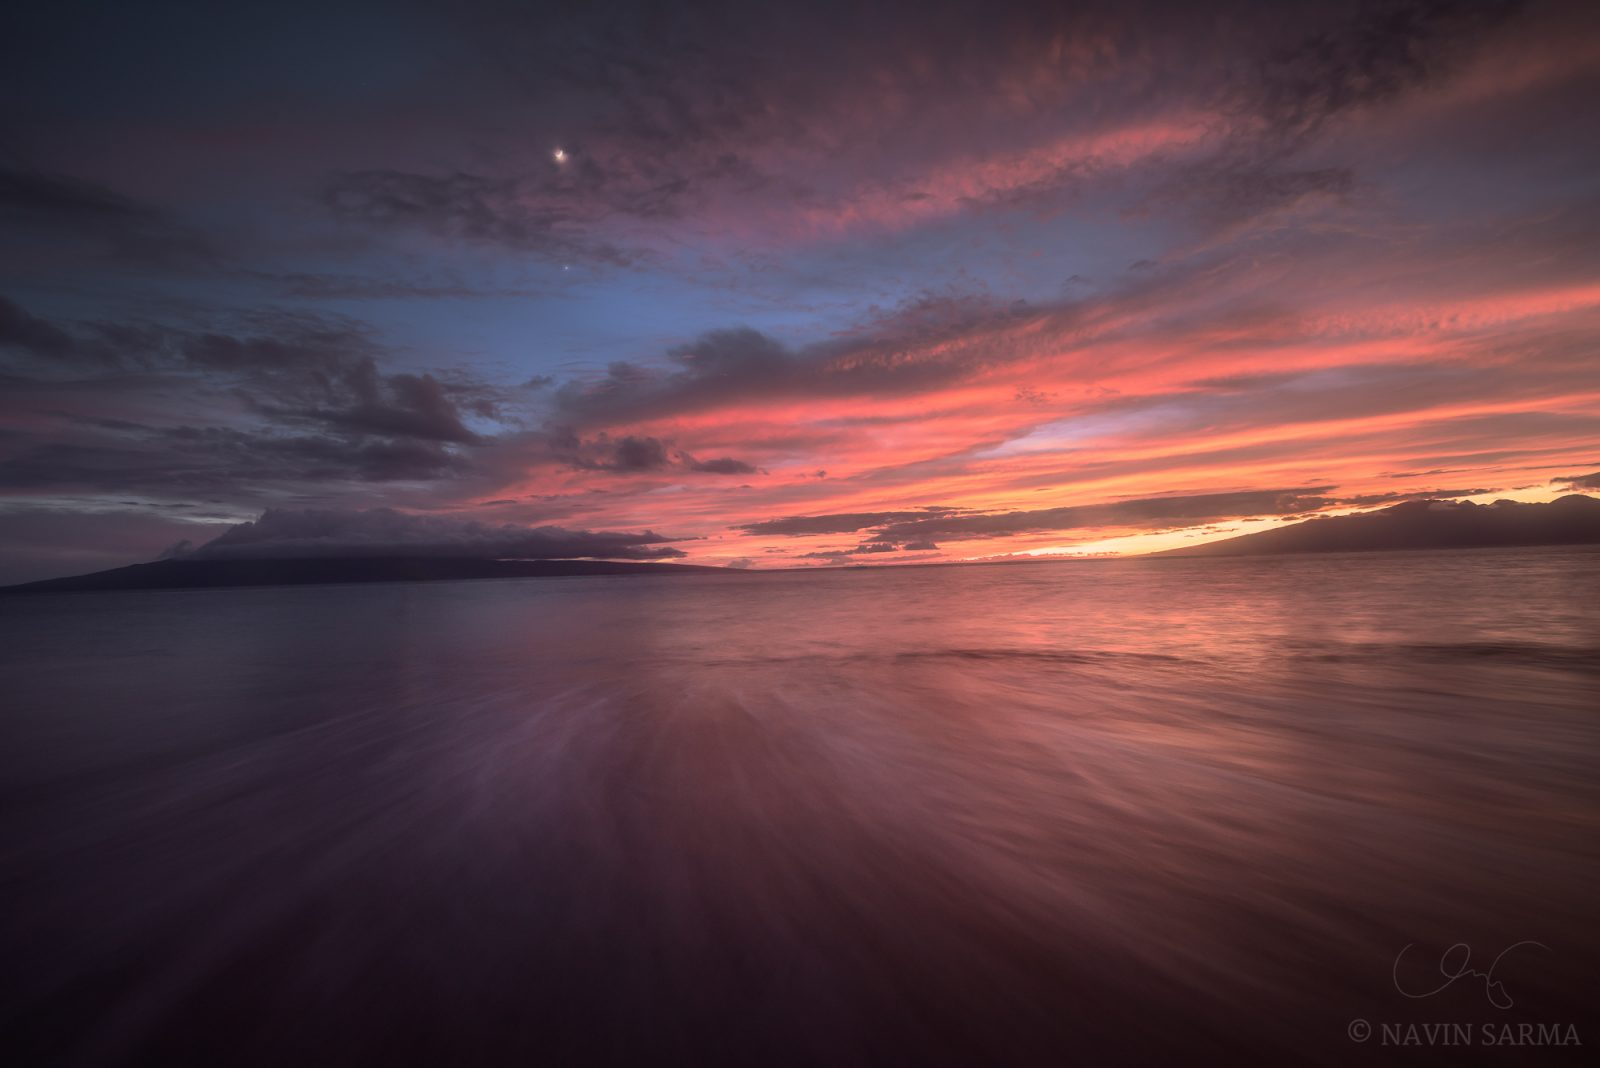 A blast of color at sunset under the crescent moon at Lahaina, Maui